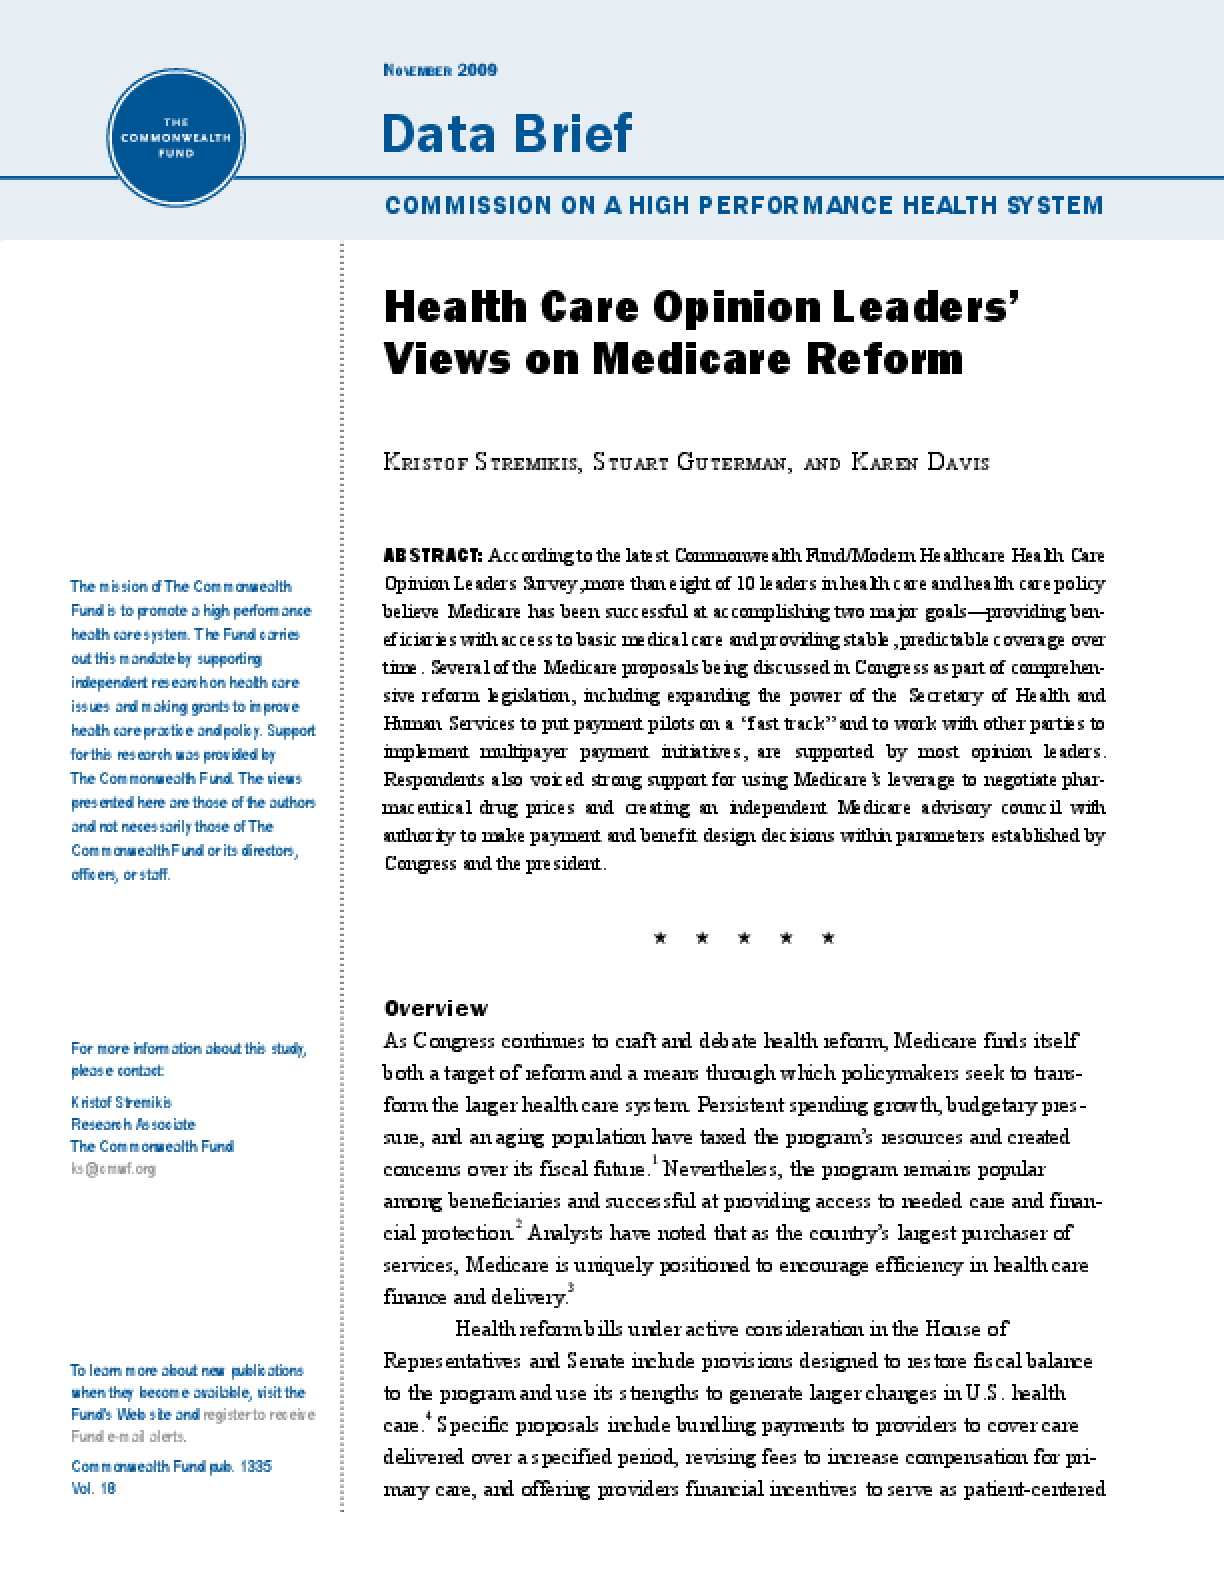 Health Care Opinion Leaders' Views on Medicare Reform